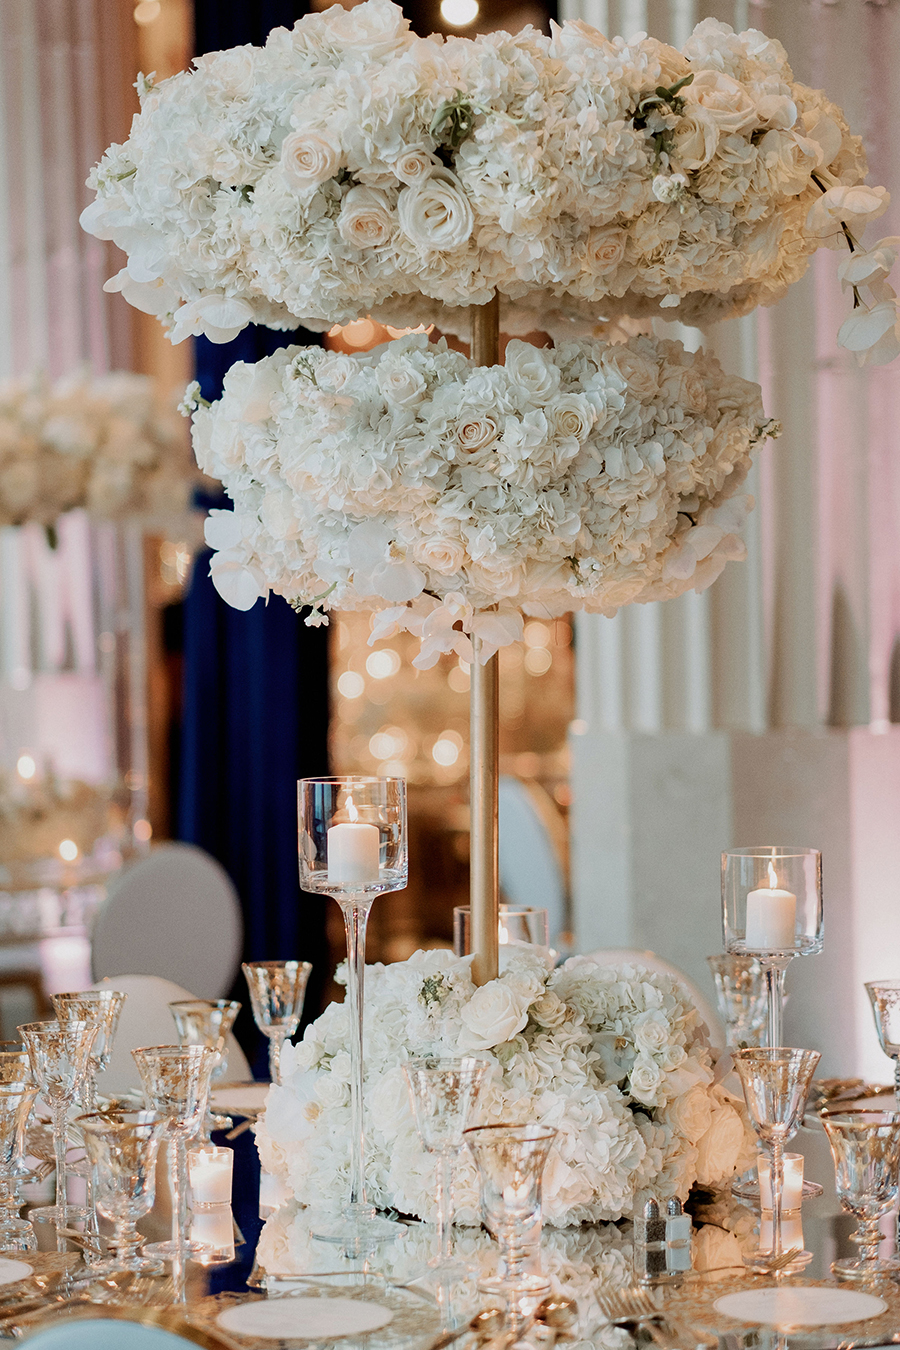 flowers, corinthian, elegant, wedding, houston, sparklers, cakes, luxury